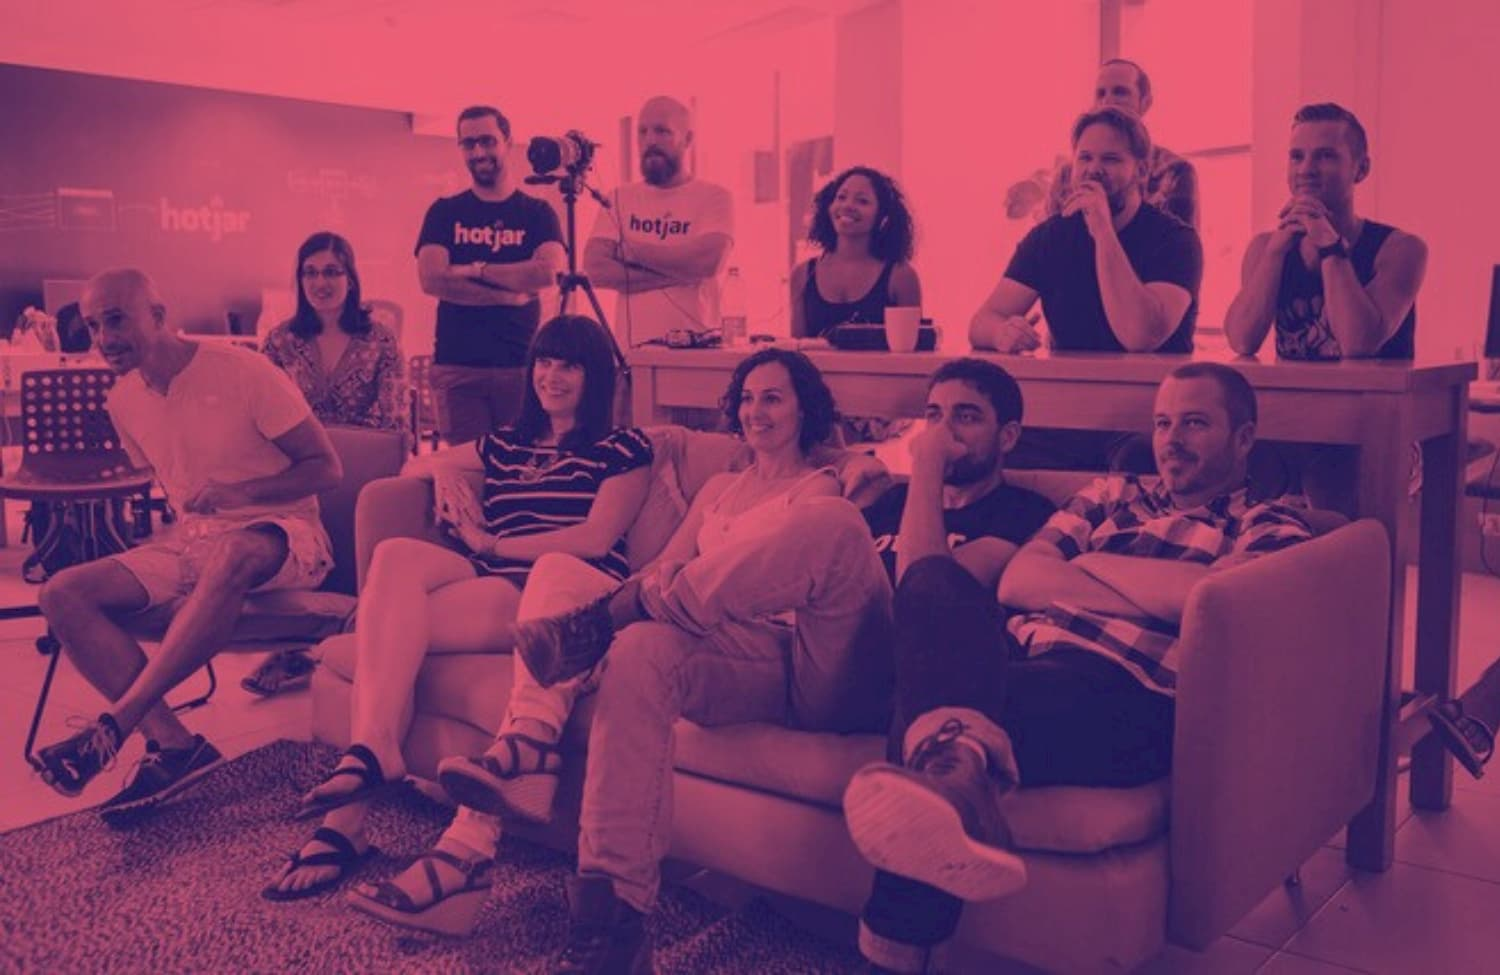 The 5 pillars of company culture that fuel growth at Hotjar